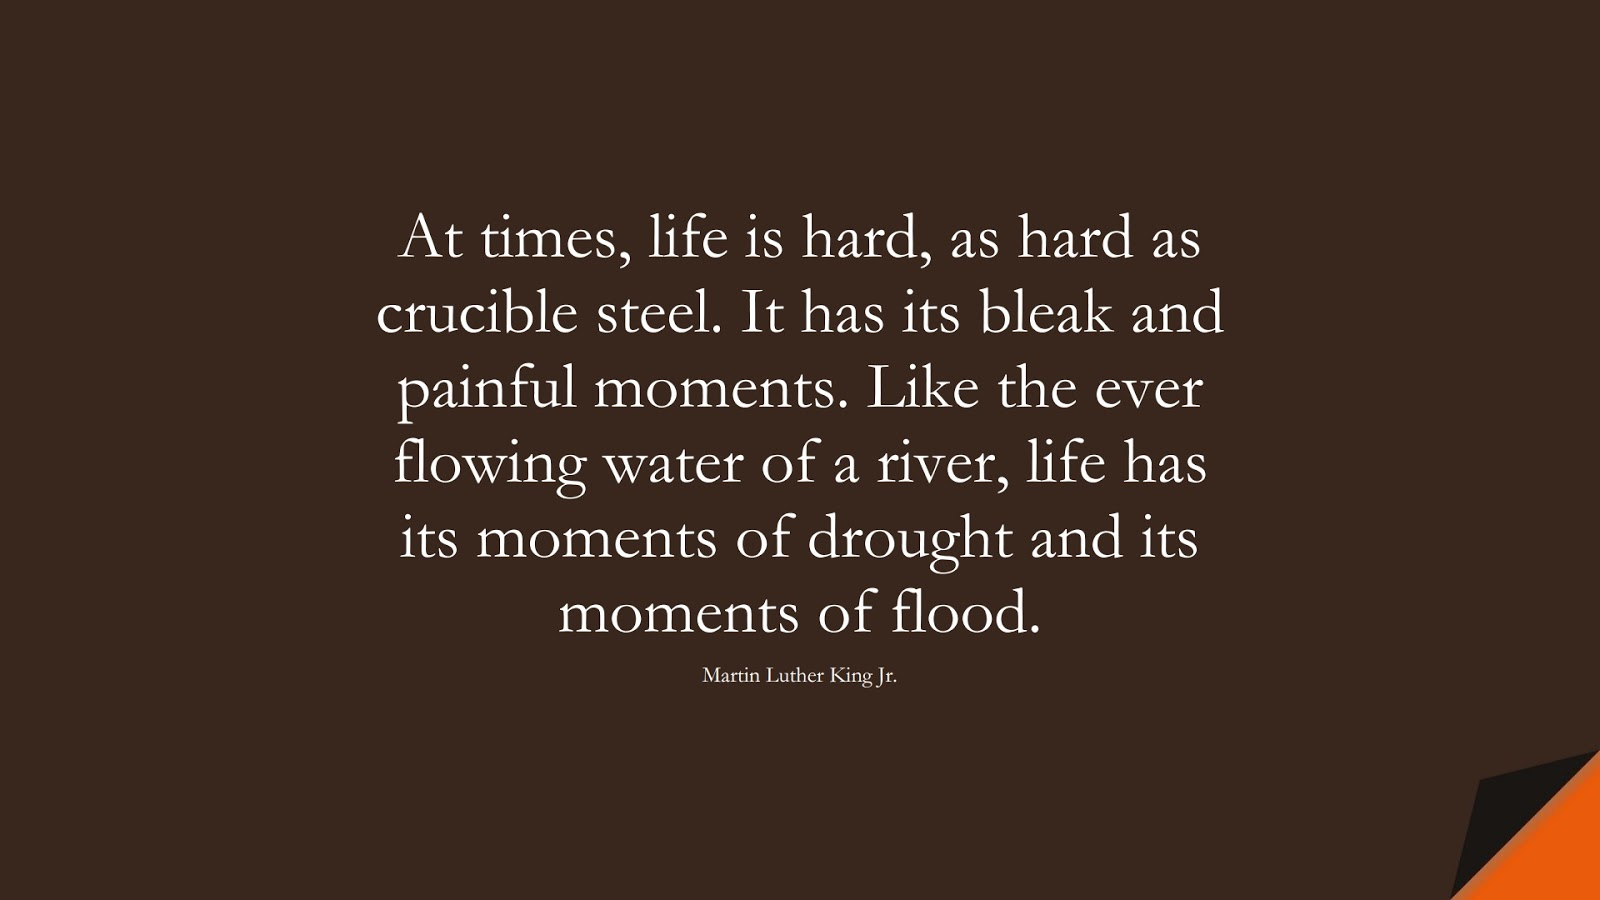 At times, life is hard, as hard as crucible steel. It has its bleak and painful moments. Like the ever flowing water of a river, life has its moments of drought and its moments of flood. (Martin Luther King Jr.);  #MartinLutherKingJrQuotes